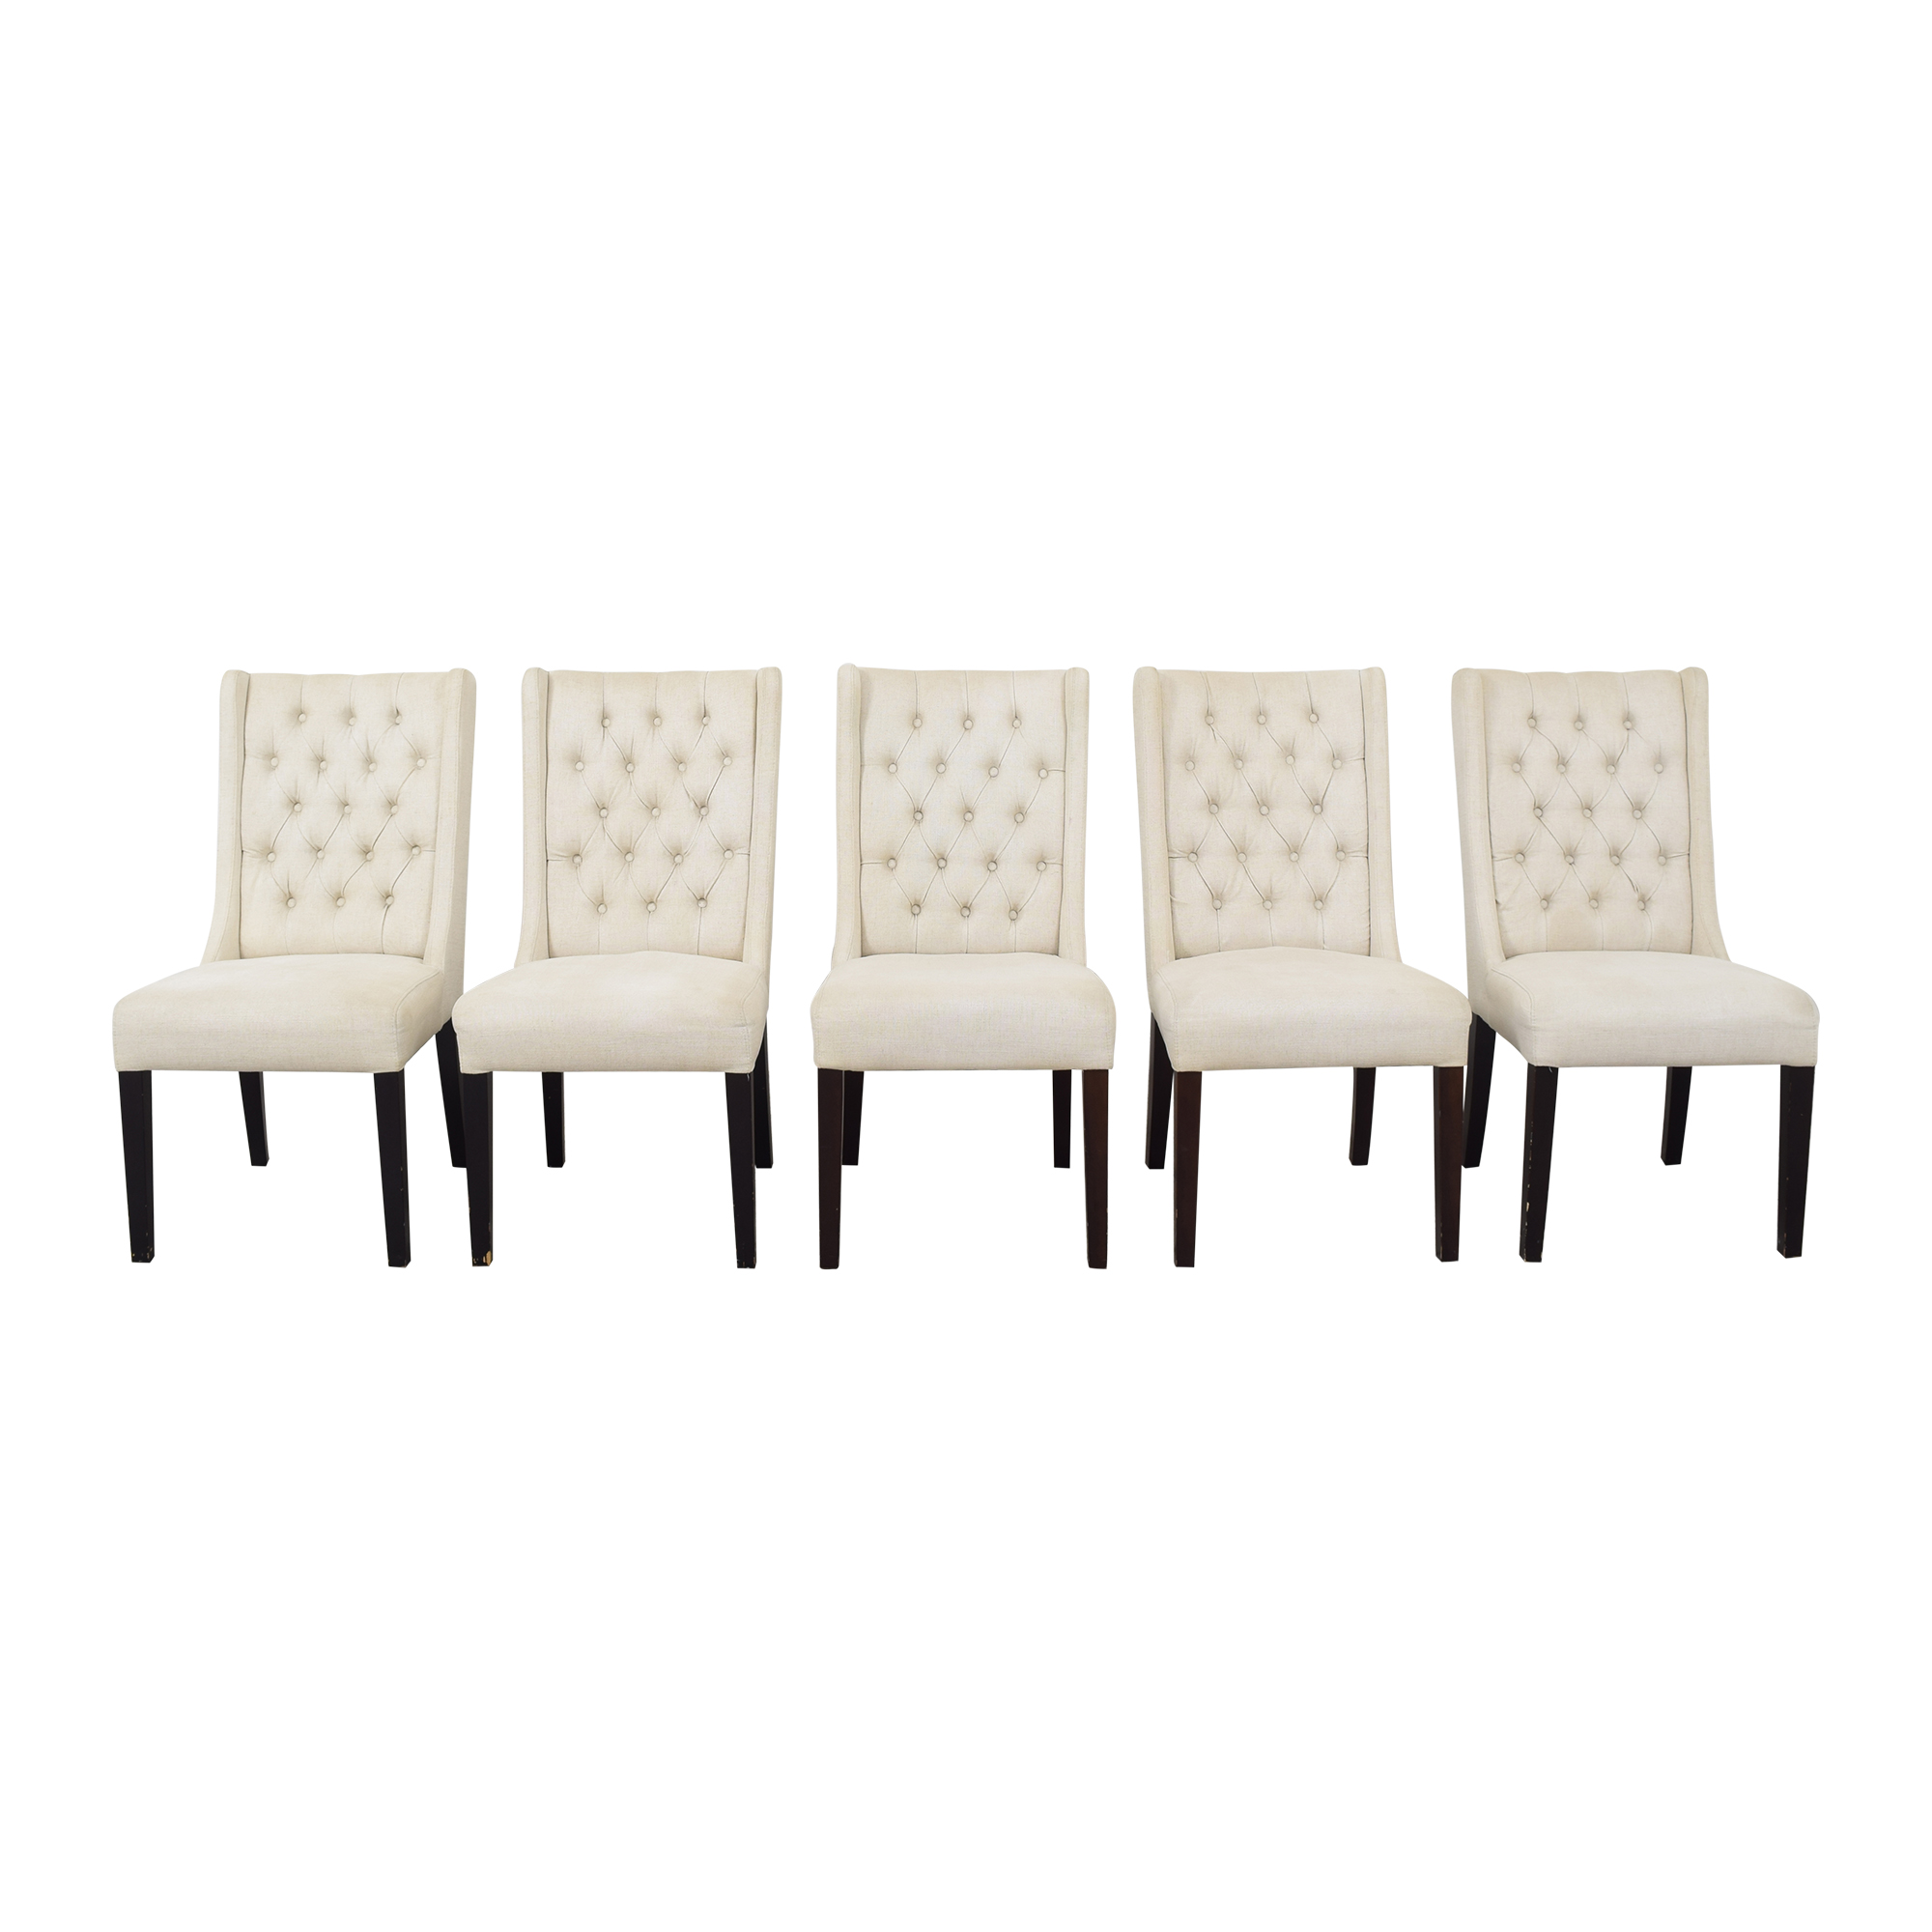 shop  Tufted Dining Chairs online